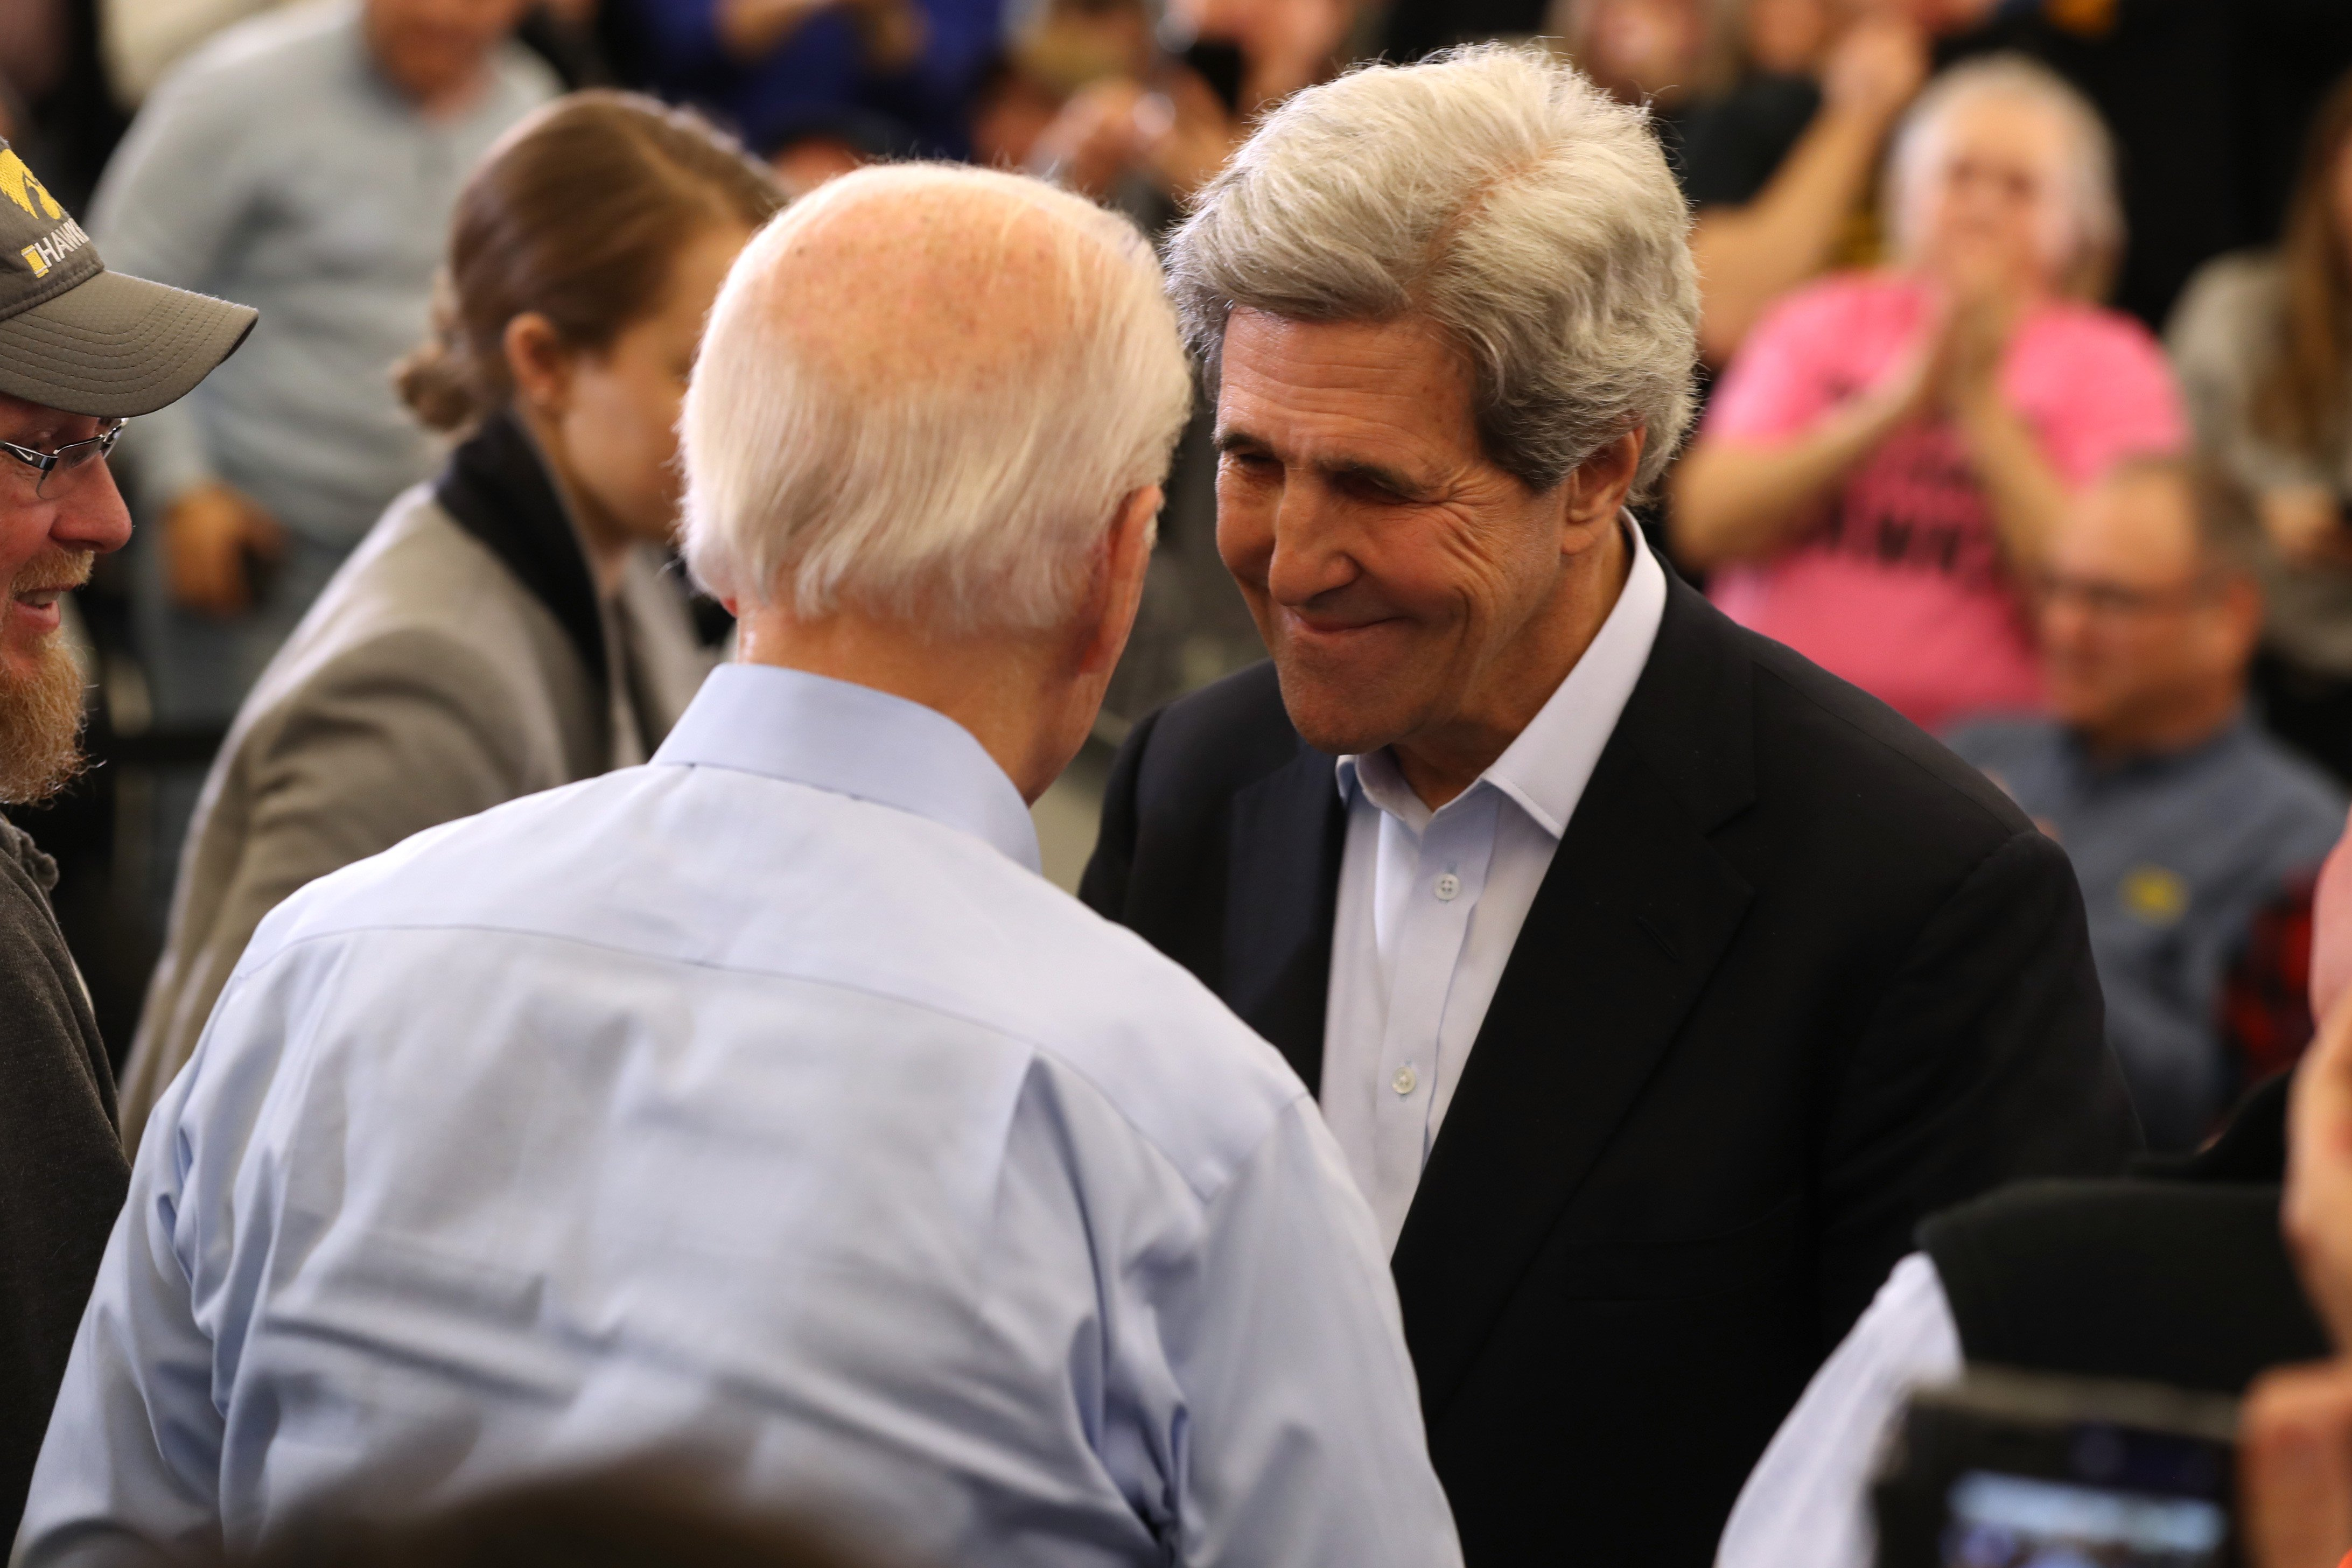 NORTH LIBERTY, IOWA - FEBRUARY 01: Former Secretary of State John Kerry (R) greets Democratic presidential candidate former Vice President Joe Biden during a campaign event on February 01, 2020 in North Liberty, Iowa. With two days to go before the 2020 Iowa Presidential caucuses, Joe Biden is campaigning across Iowa. (Photo by Justin Sullivan/Getty Images)